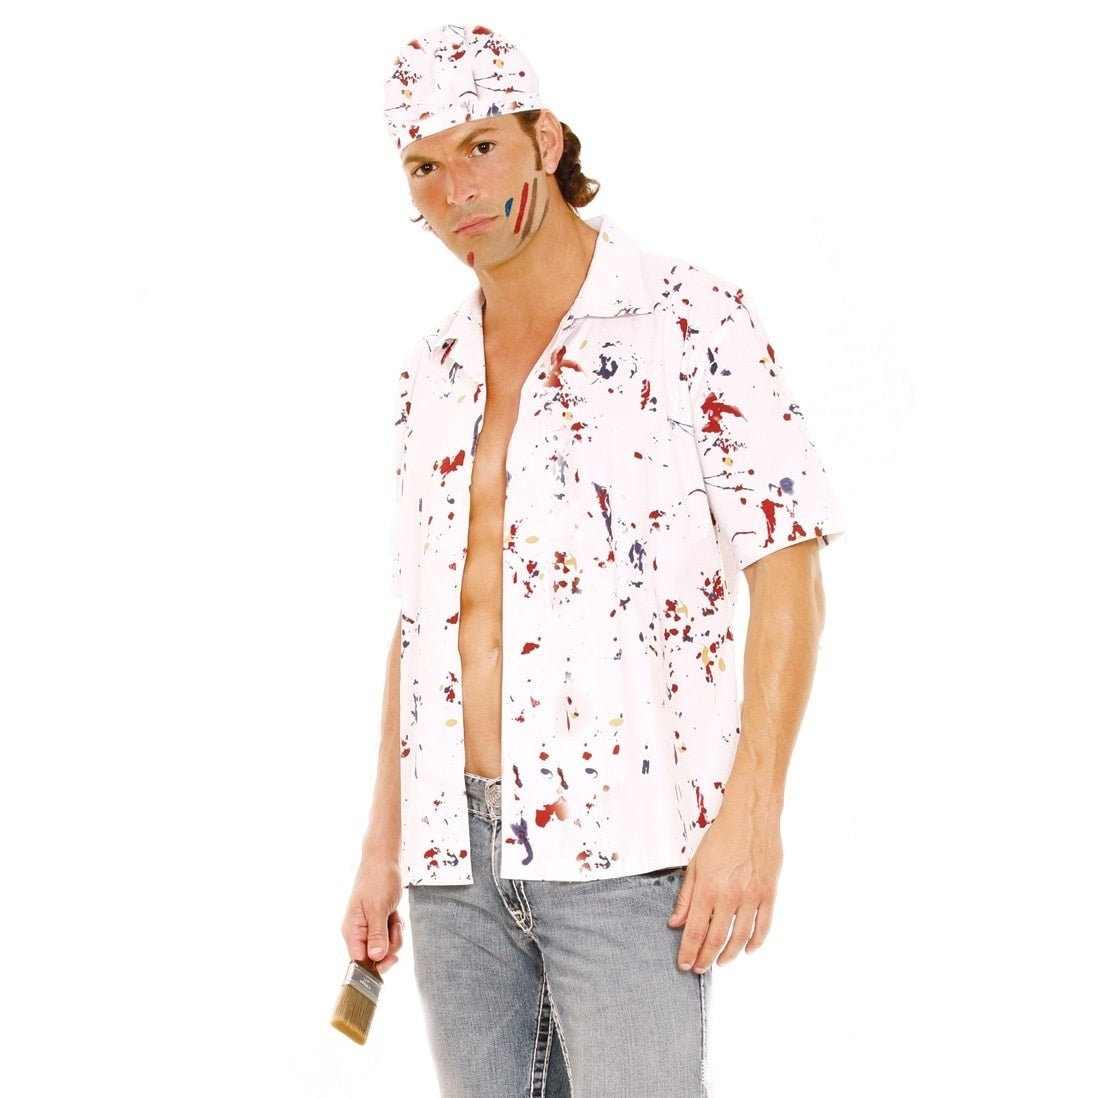 Elegant Moments Paint the Town Costume With Shirt, Hat an...